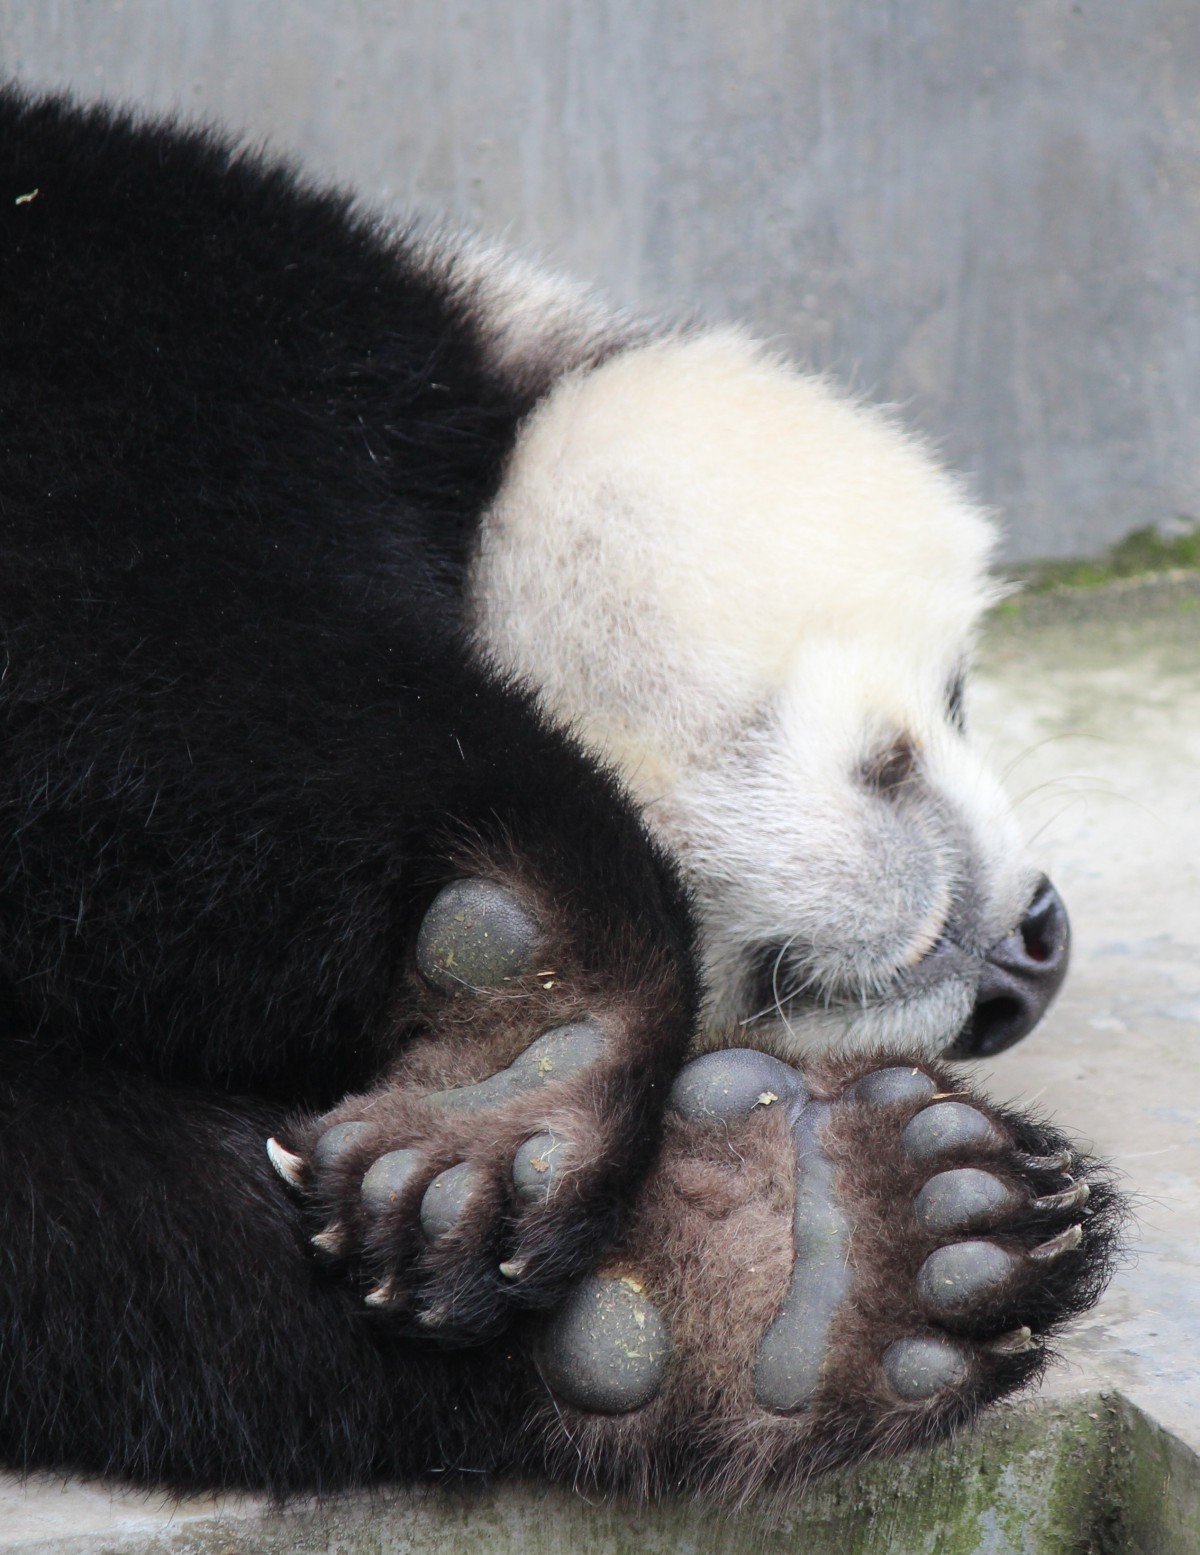 Chengdu - Research Base of Giant Panda Breeding XXIV